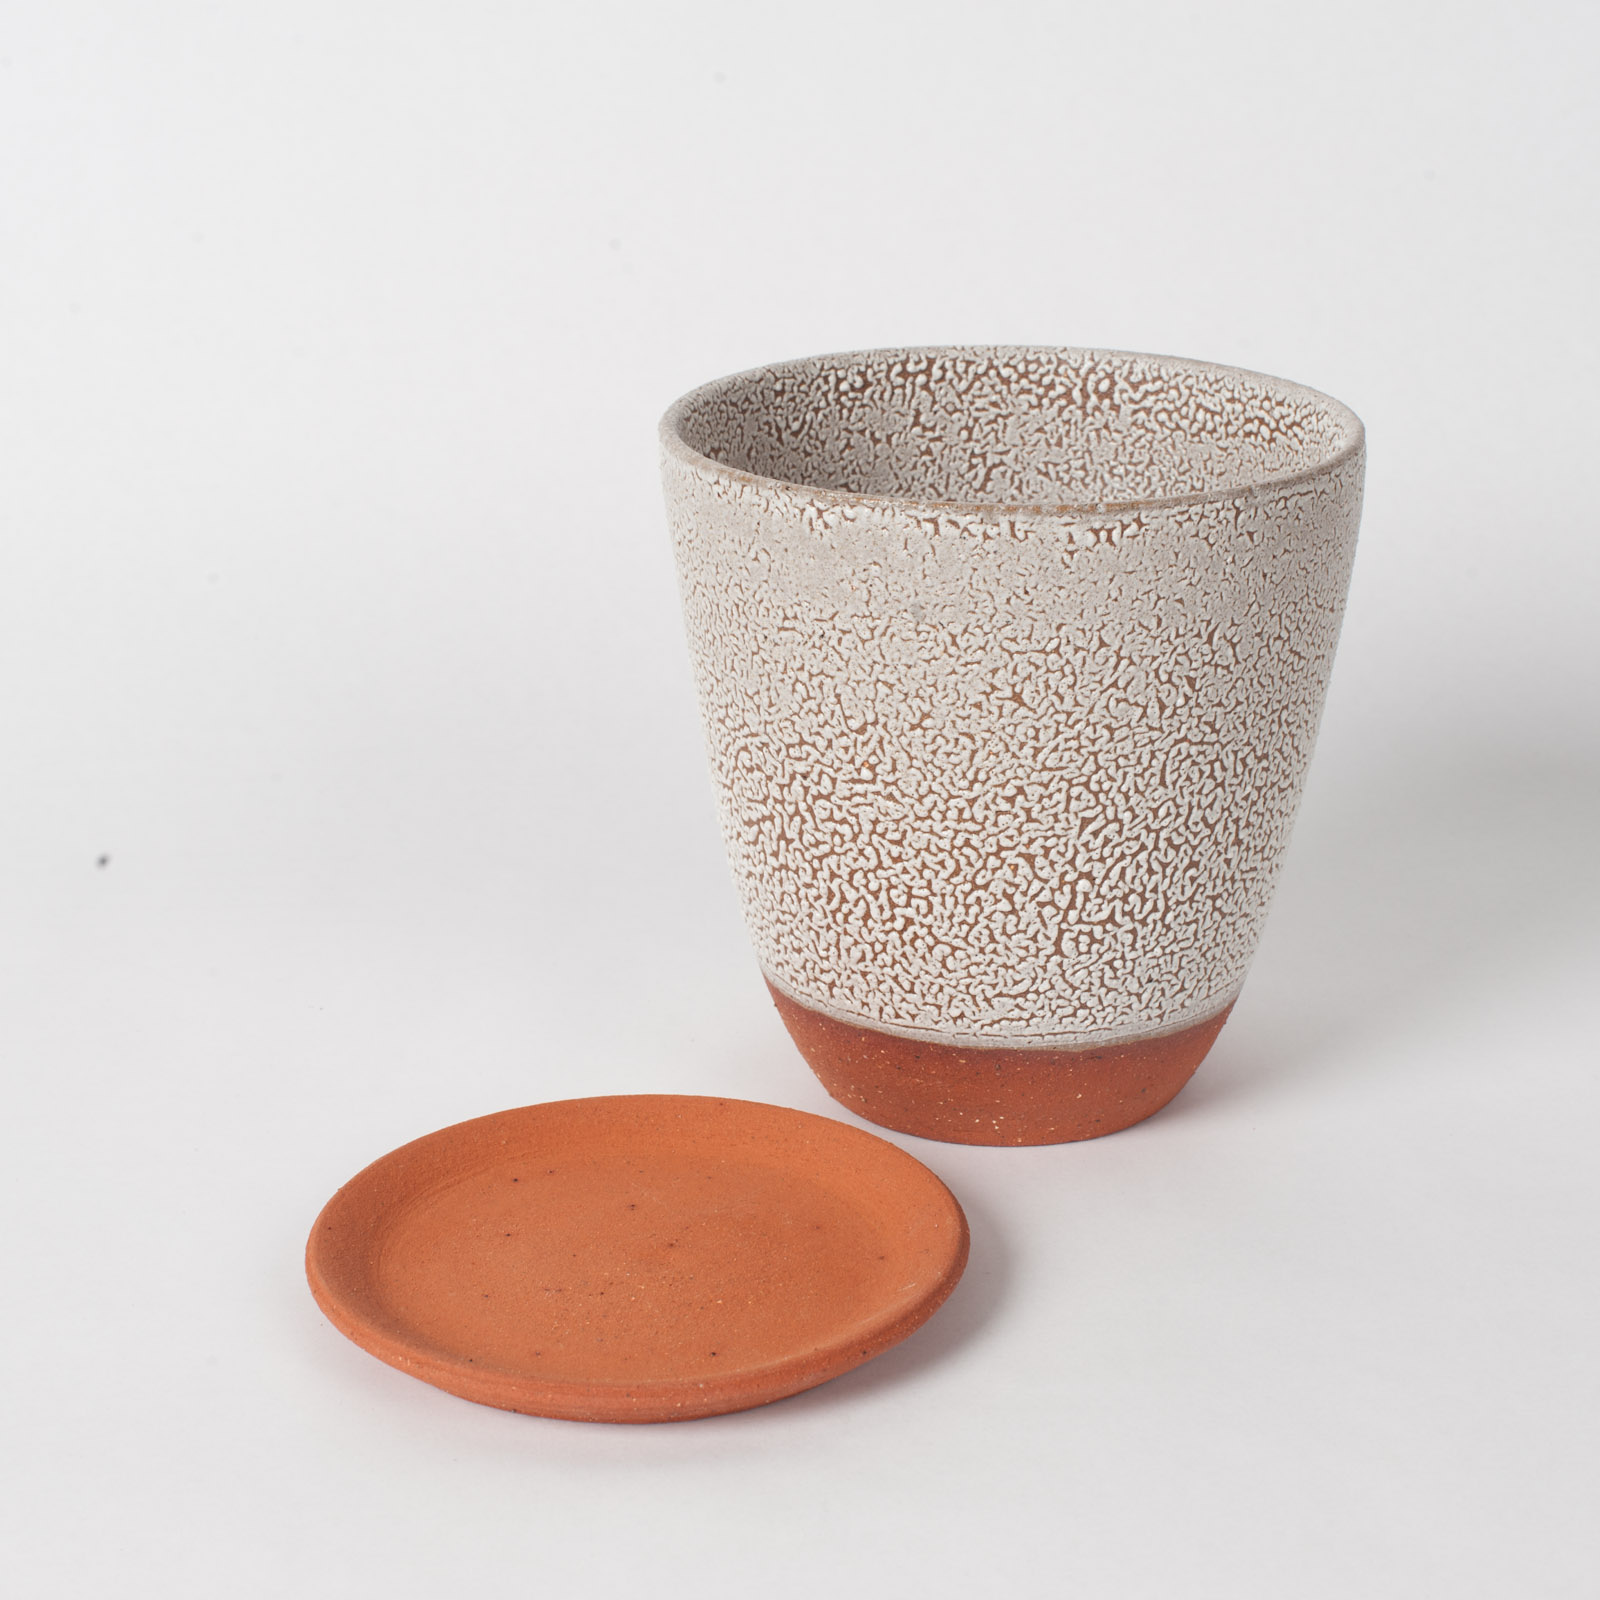 Crawl Planter In Red Terracotta Midfire With White Crawl Glaze By Oh Hey Grace 05